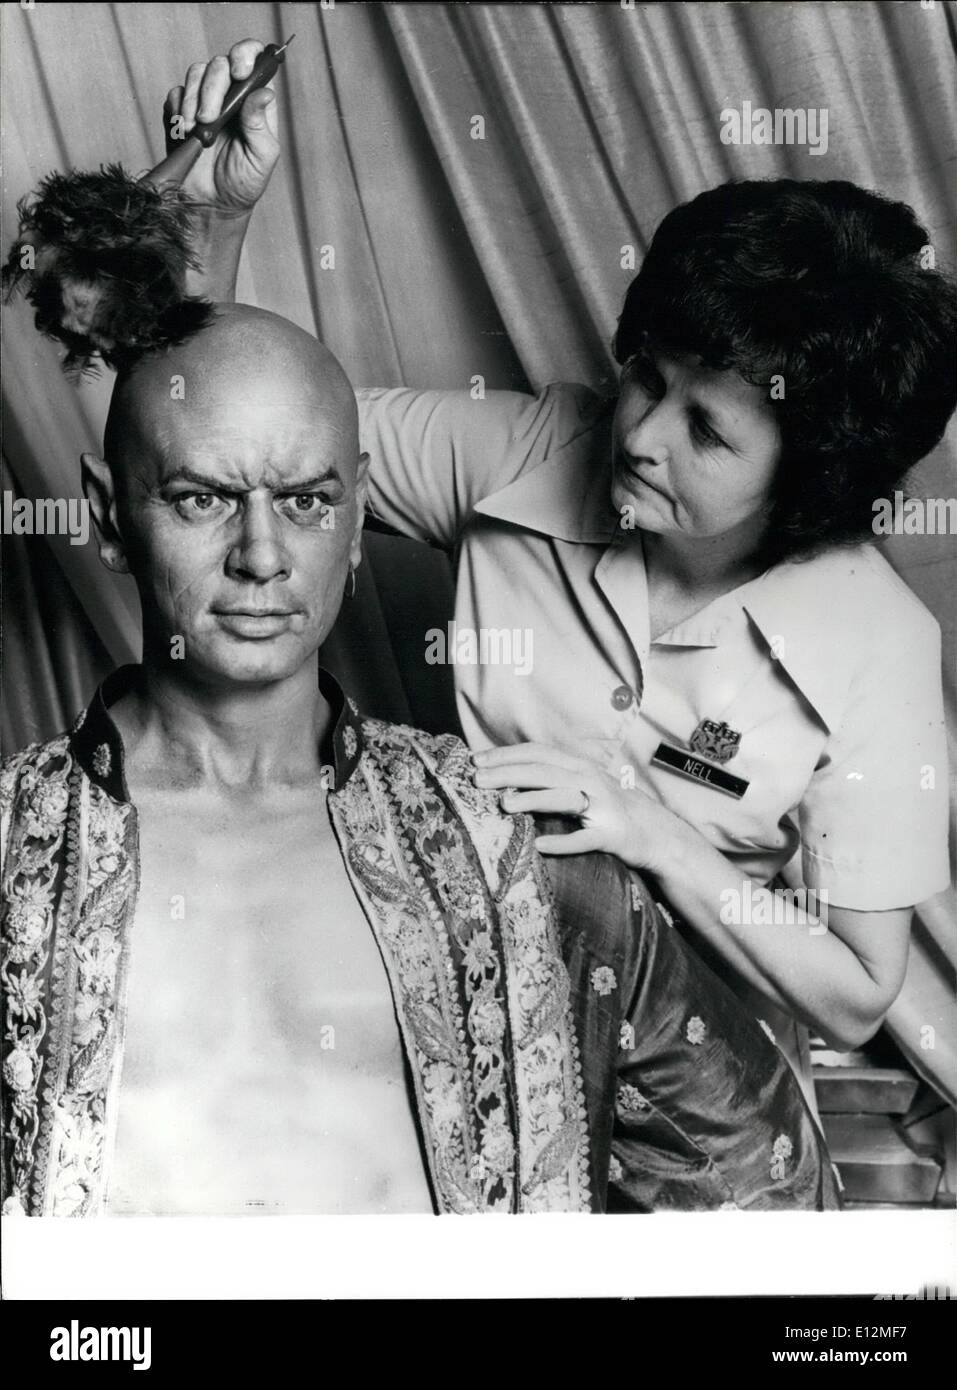 Feb. 24, 2012 - Yul gets the brush Off: Yul Brynner gets his famous bald head dusted off by a houseproud maid. Or so it would seem. Fact is, the figure is only an incredible likeness of the super star. It is a major attraction at the Stars Hall of Fame wax museum near Orlando, Florida. - Stock Image